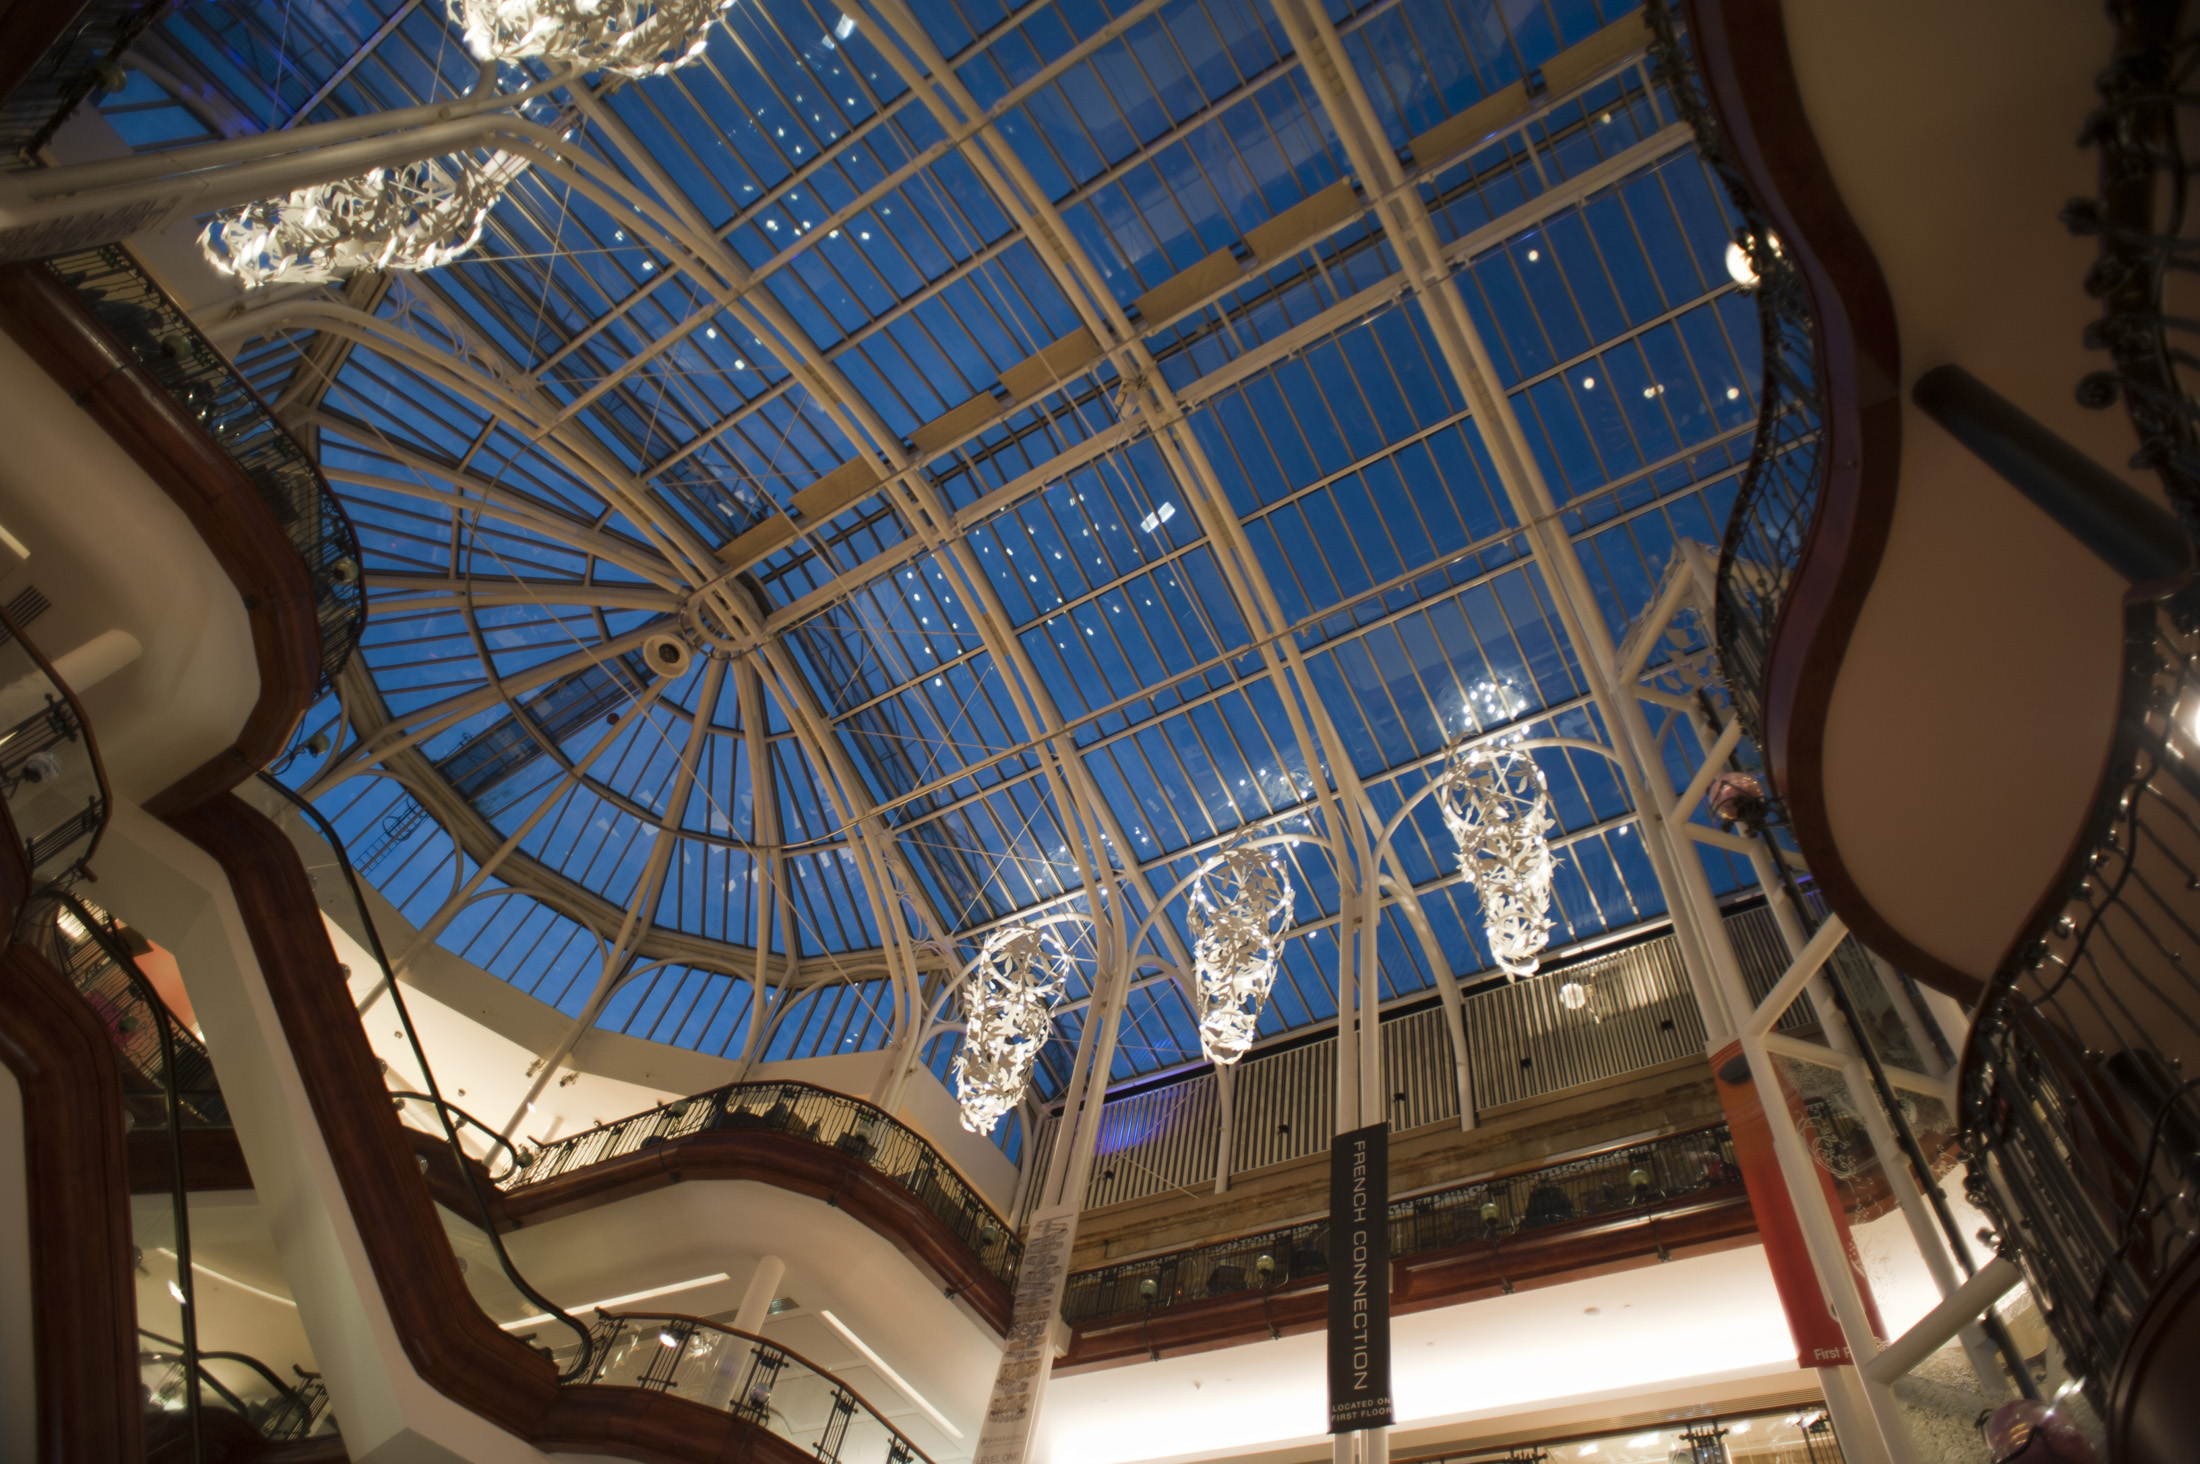 View of the domed and vaulted glass roof of the Princes Square Shopping Centre, Glasgow